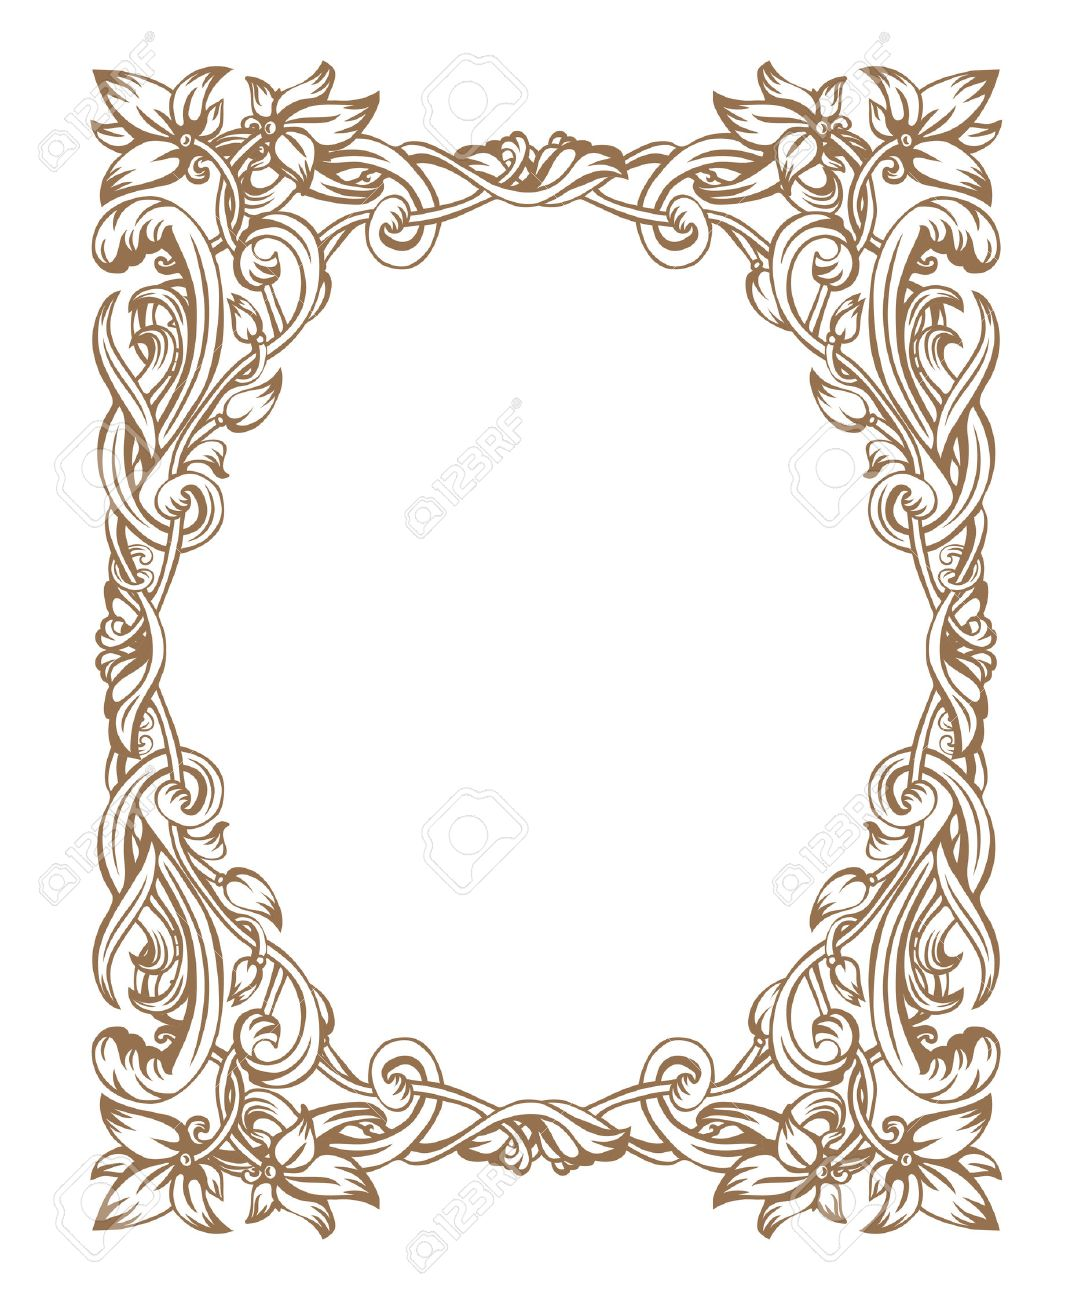 Vector vintage art nouveau frame composed of vignettes leaves and flowers of golden color on a white background